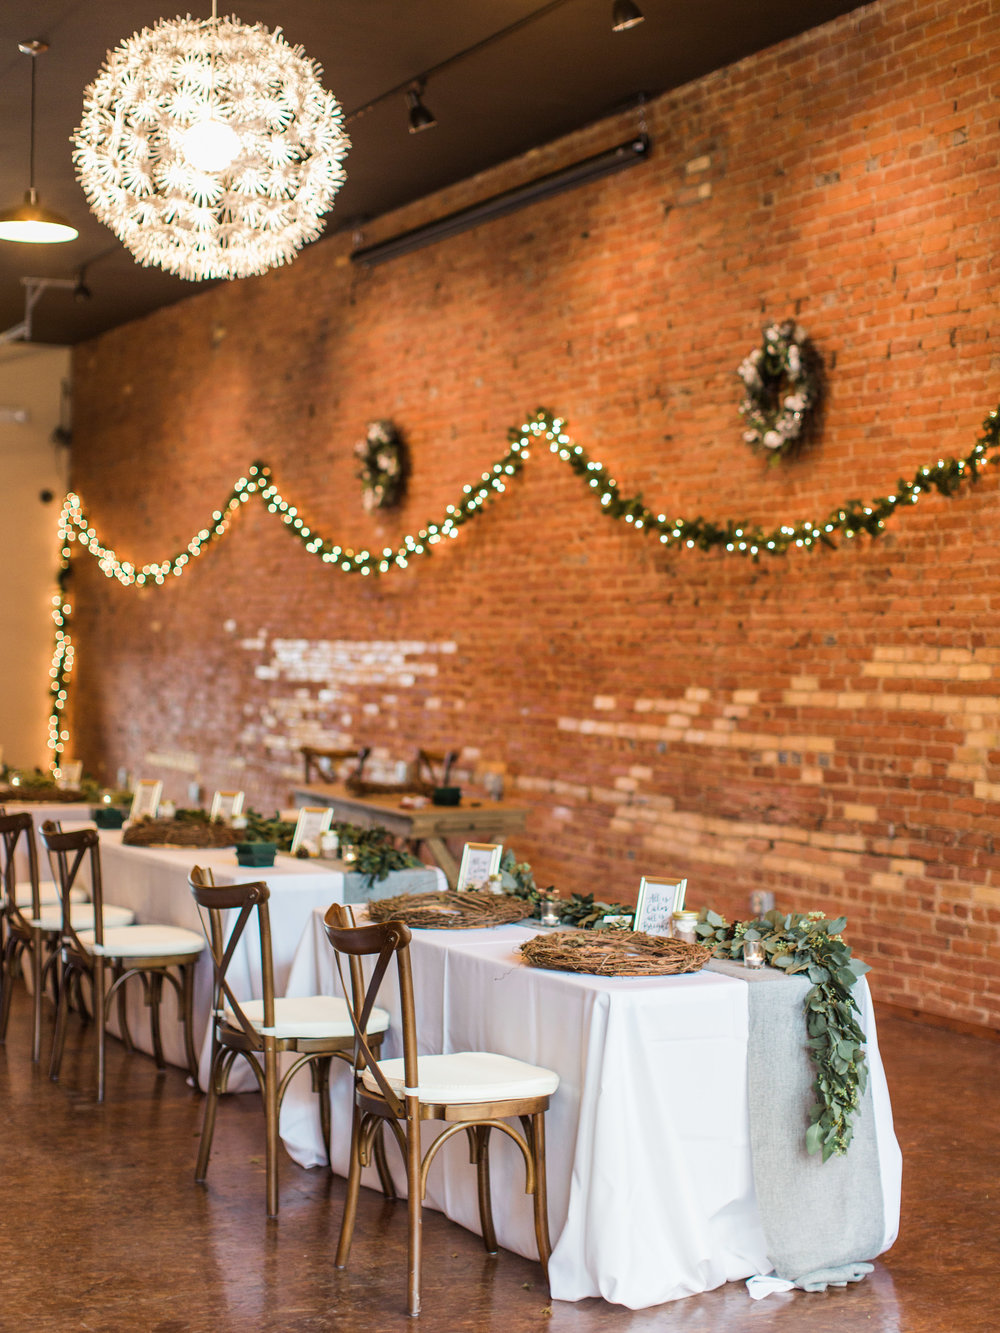 Photo: http://www.samanthajamesphoto.com/ Holiday Workshop Design: https://www.eldeventdesign.com/eldholidayworkshop2016